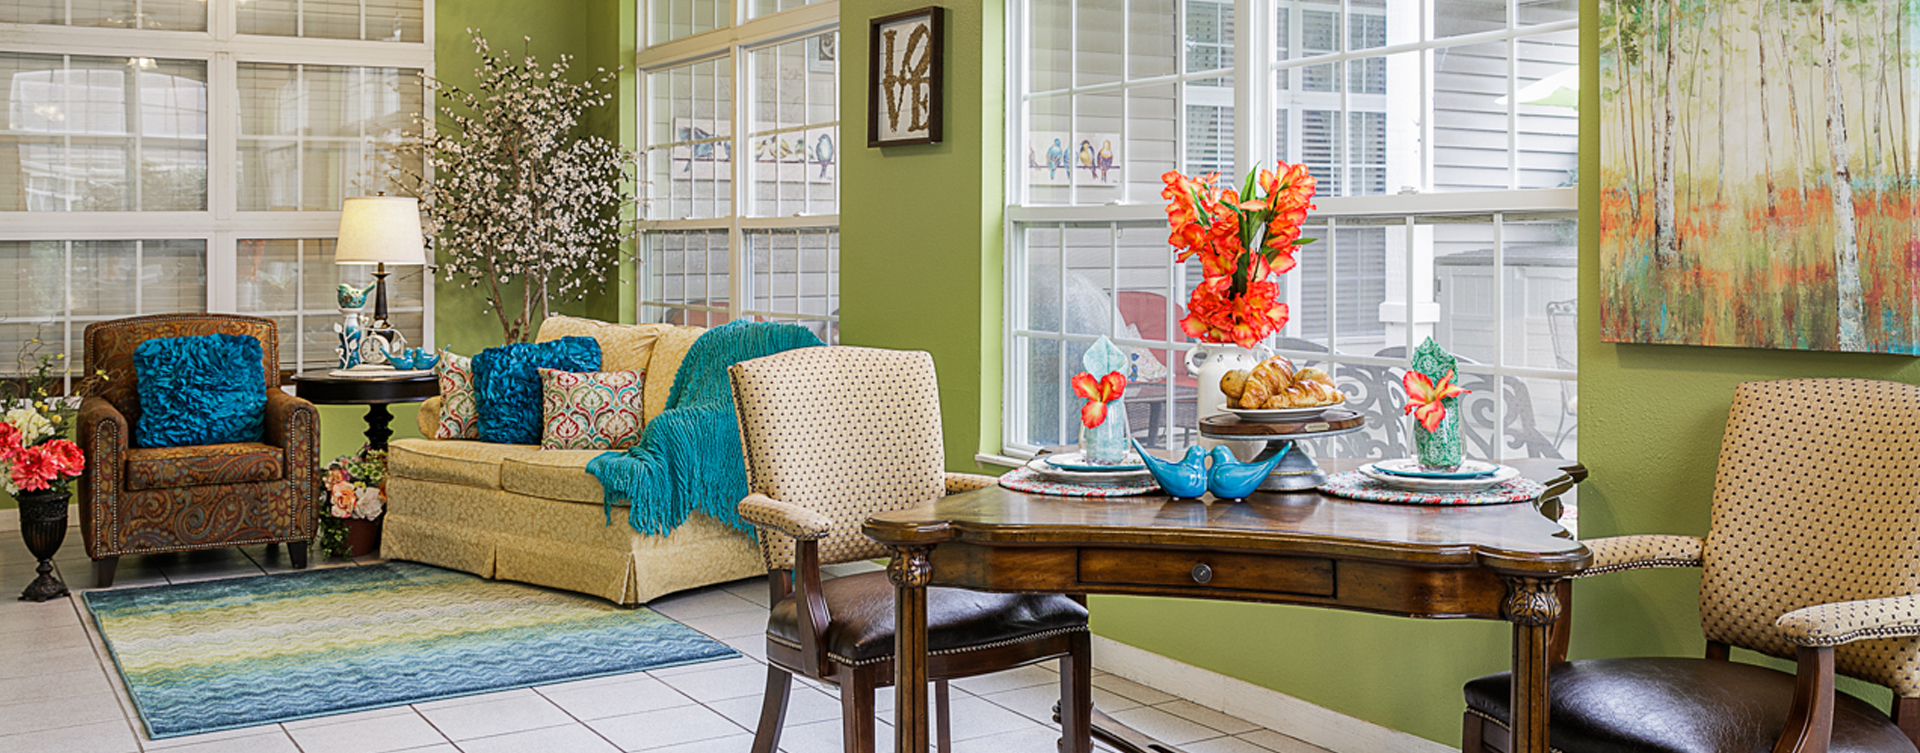 Relax in the warmth of the sunroom at Bickford of Omaha - Hickory